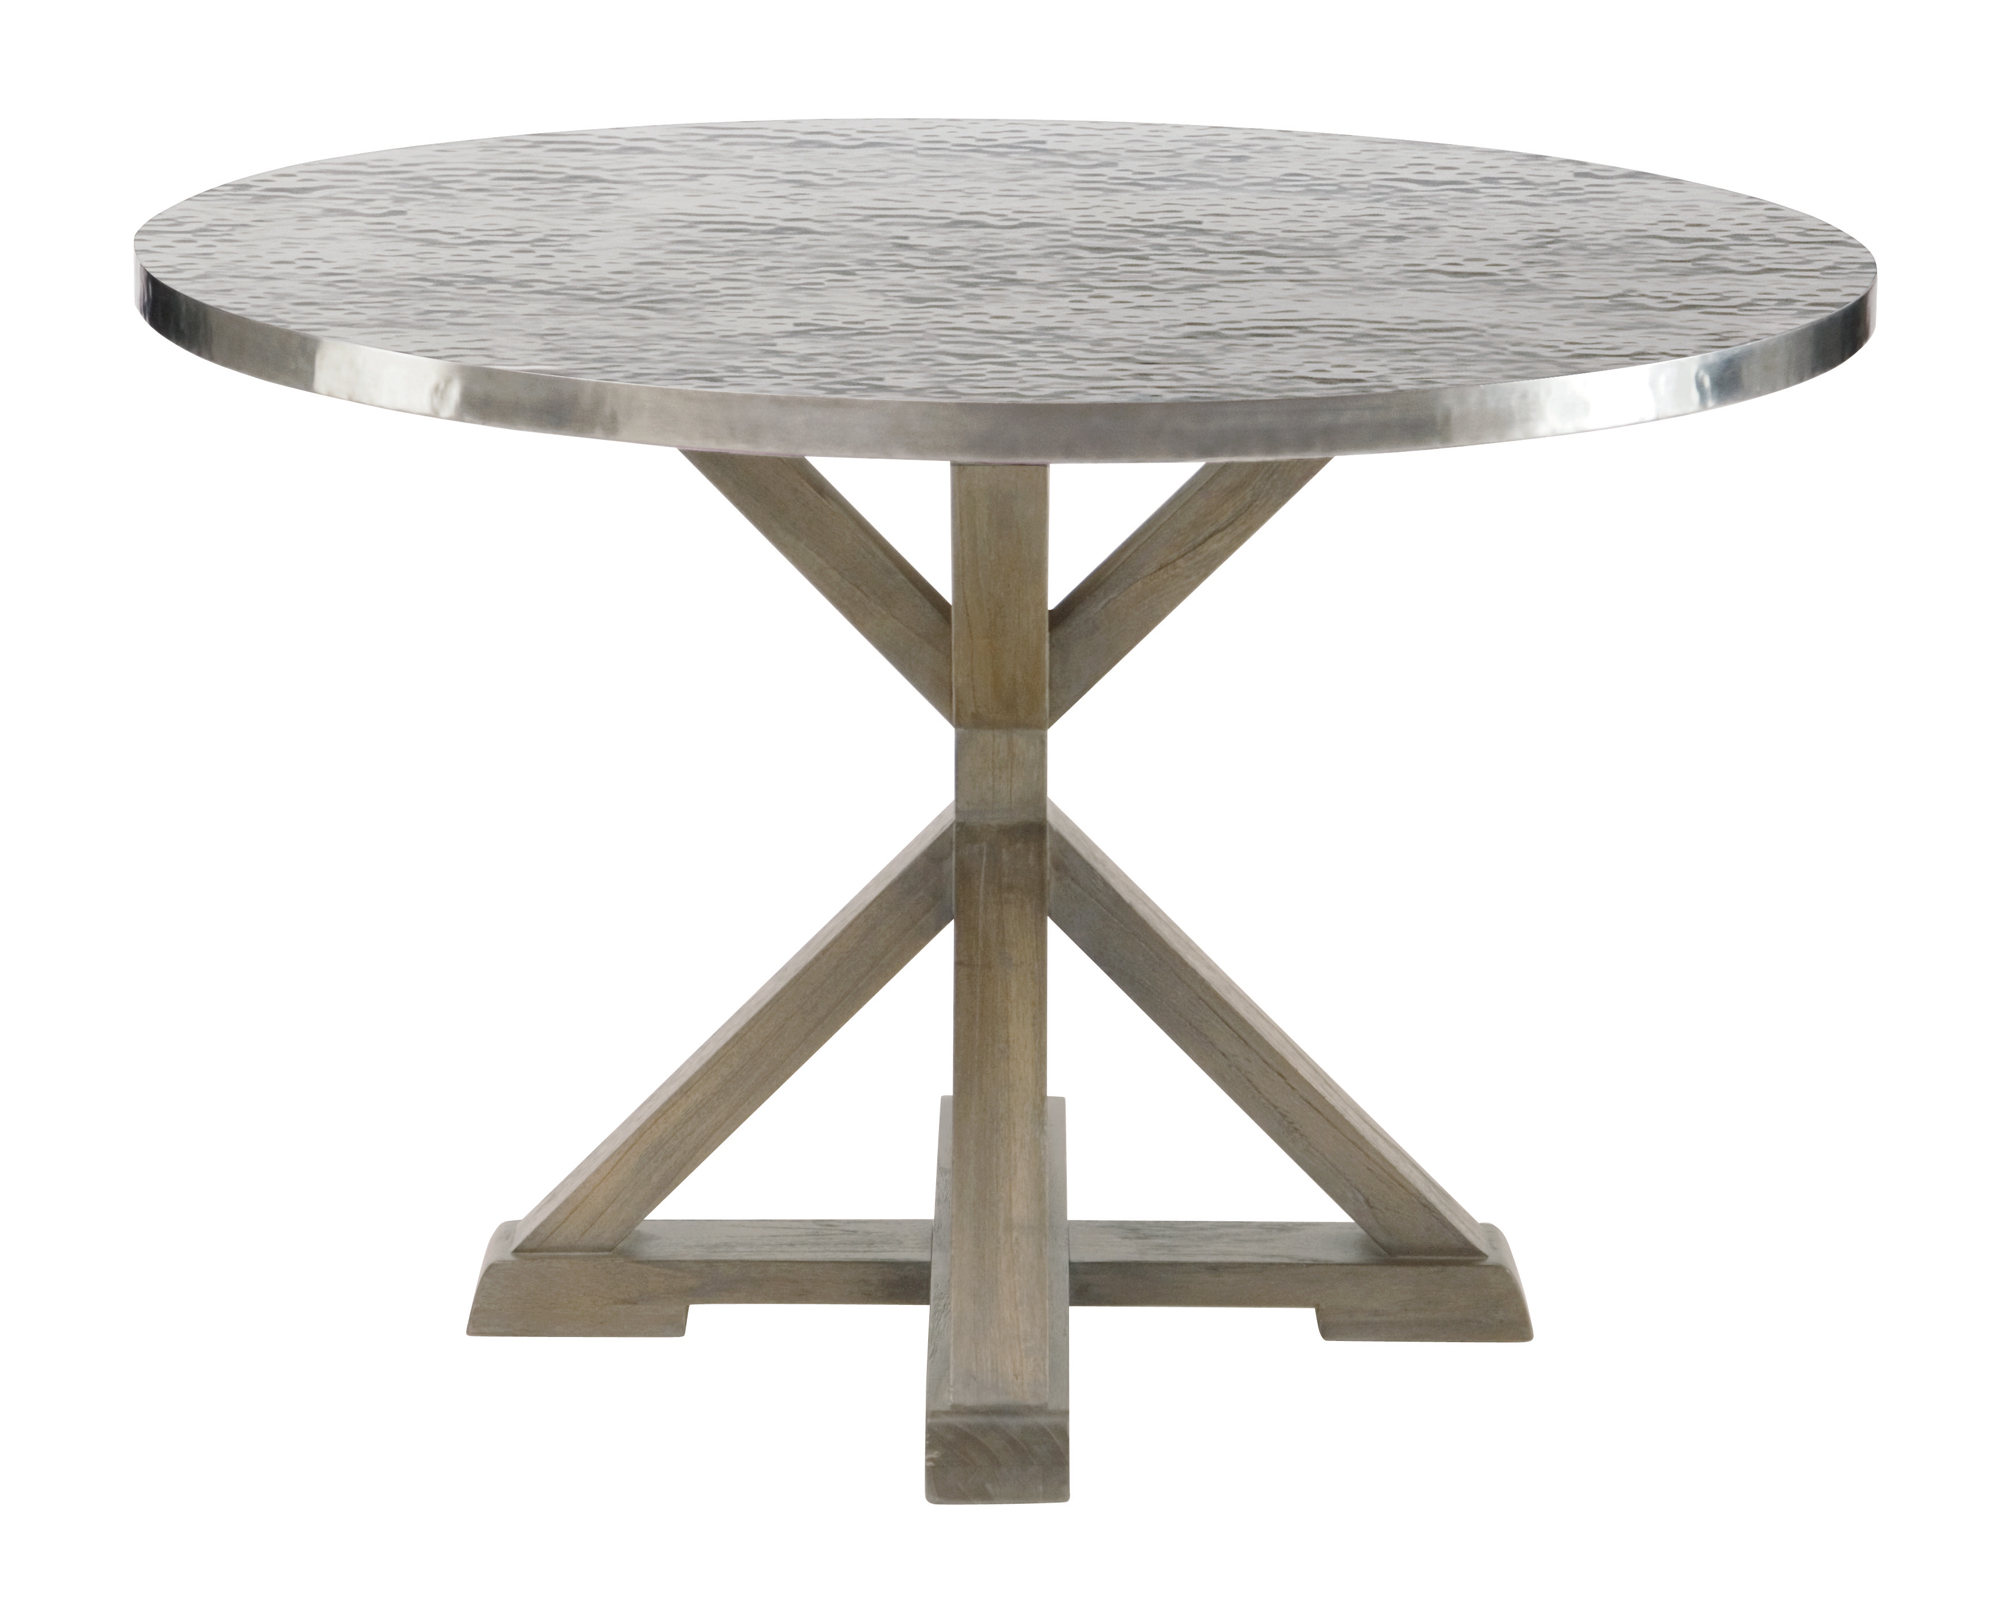 Round metal dining table bernhardt for Steel dining table design